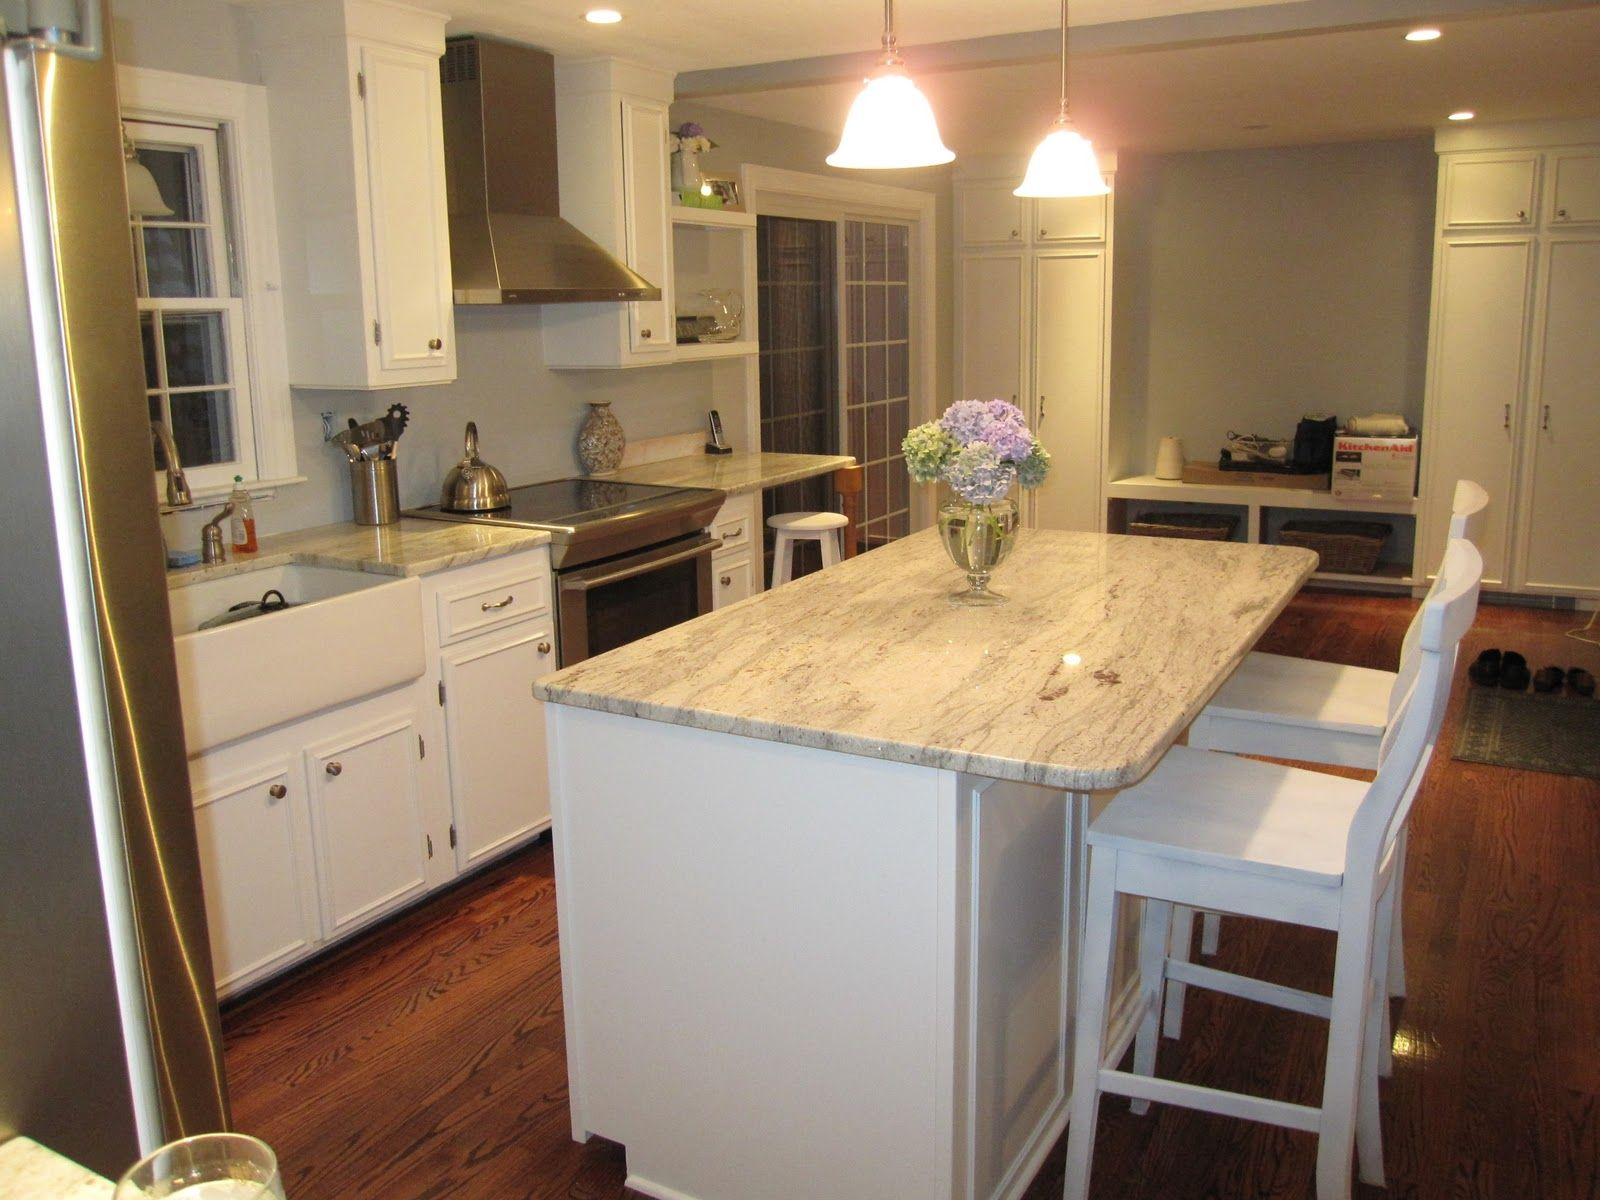 White Cabinets With Granite Countertops Diy Kitchen